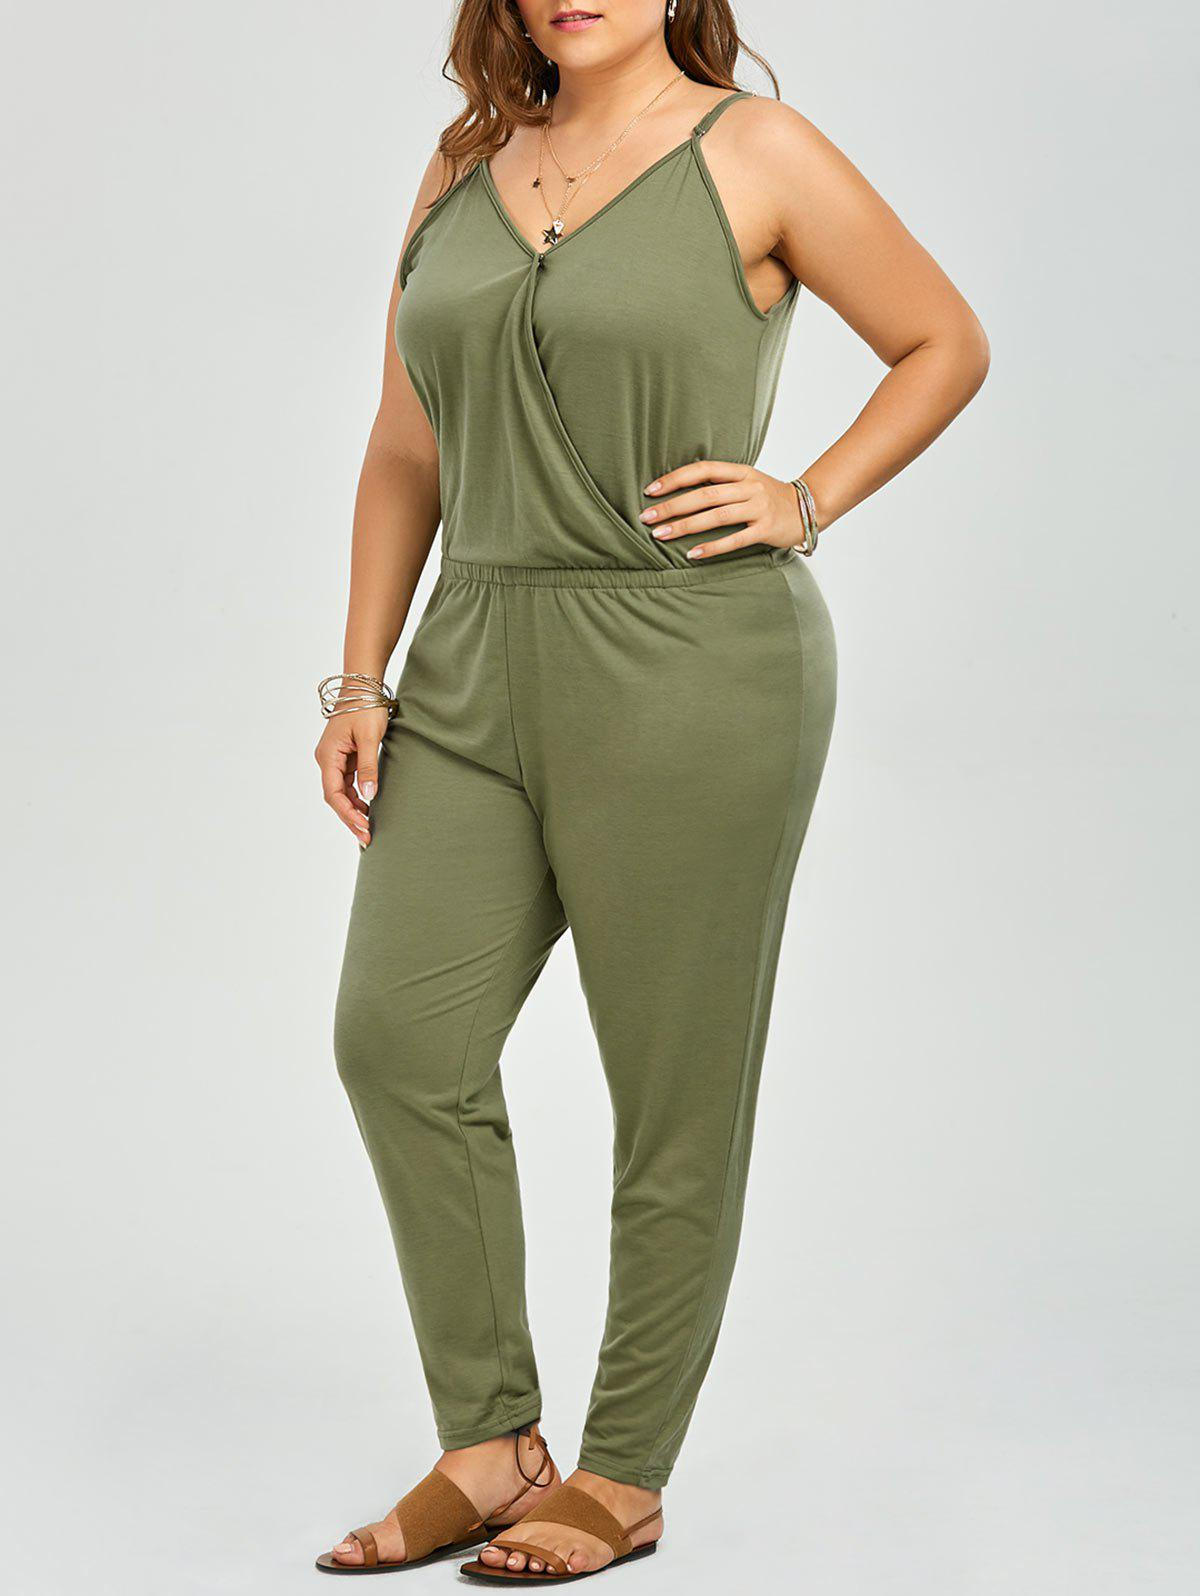 Hot V Neck Plus Size Spaghetti Strap Jumpsuit